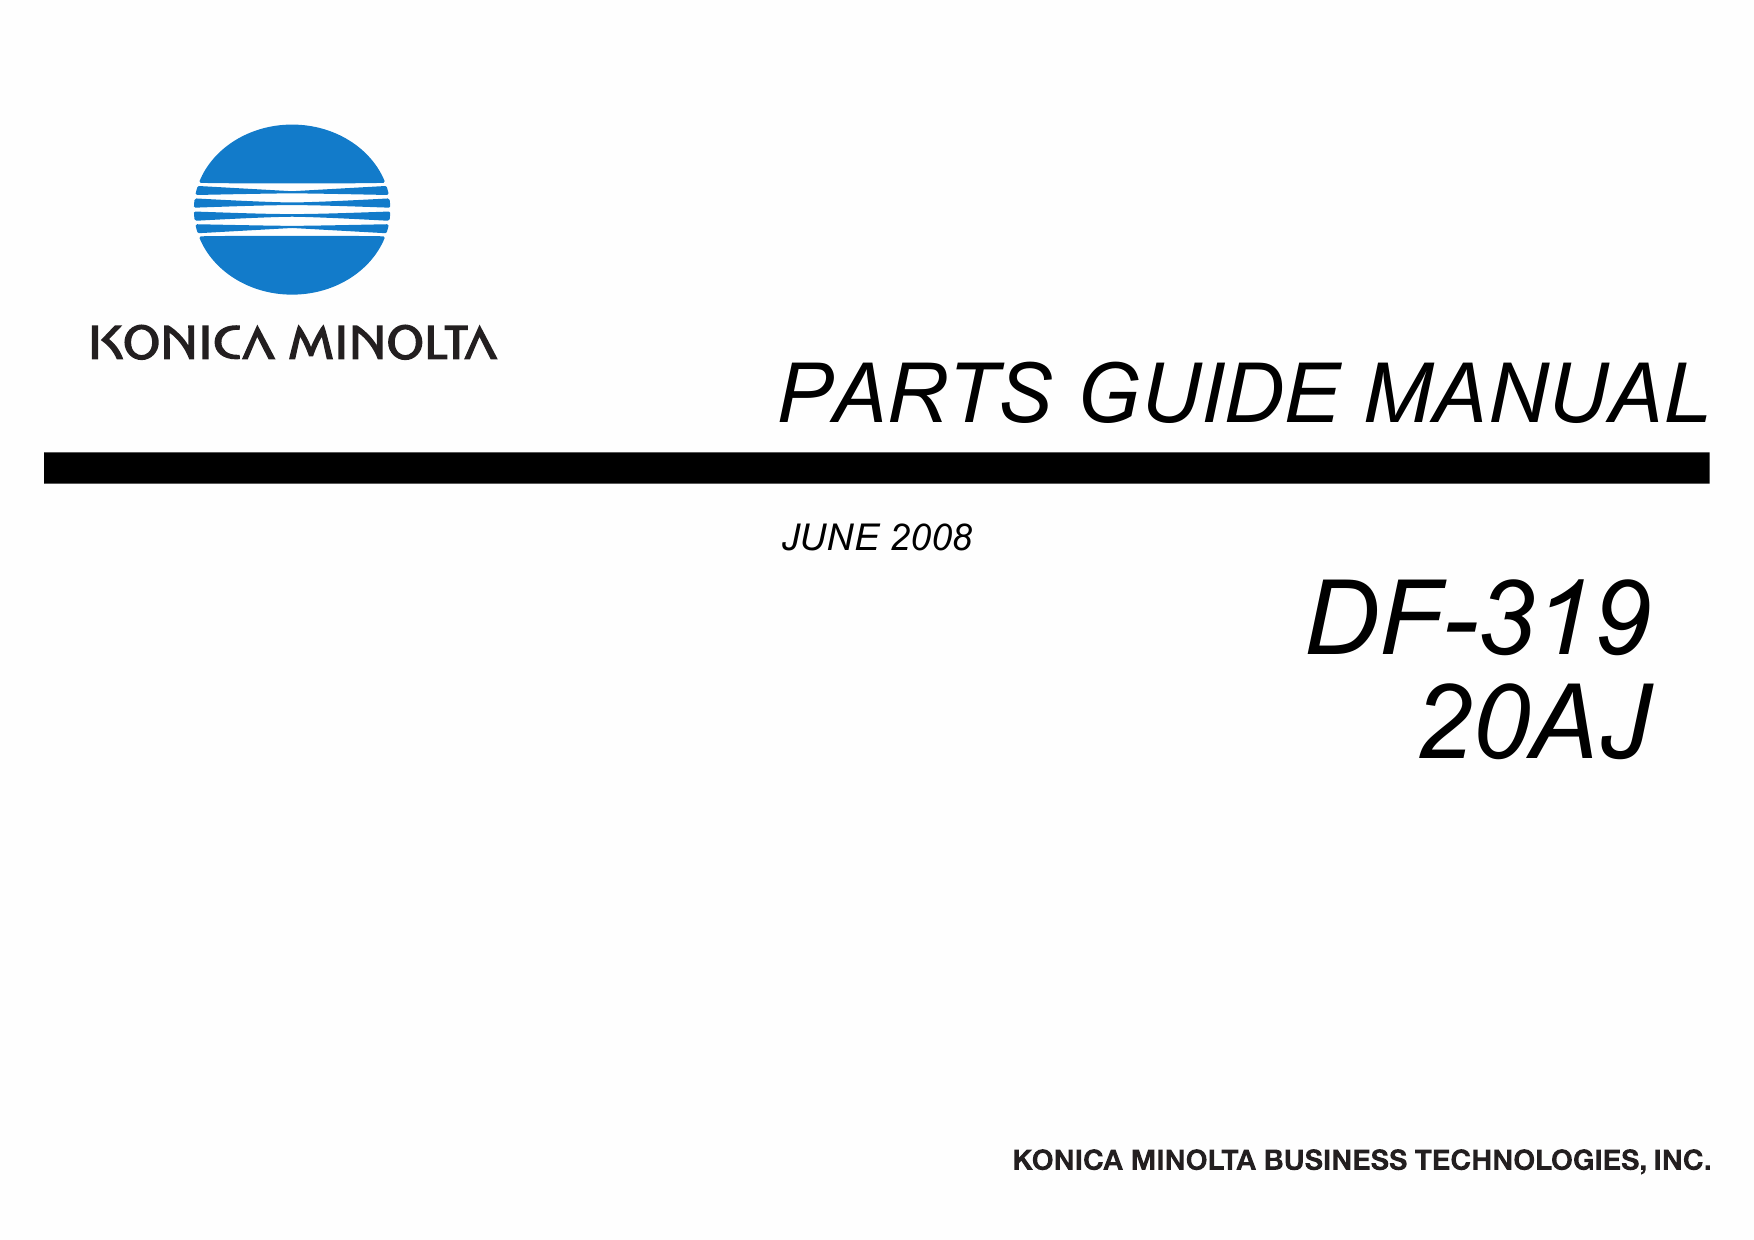 Konica-Minolta Options DF-319 20AJ Parts Manual-1